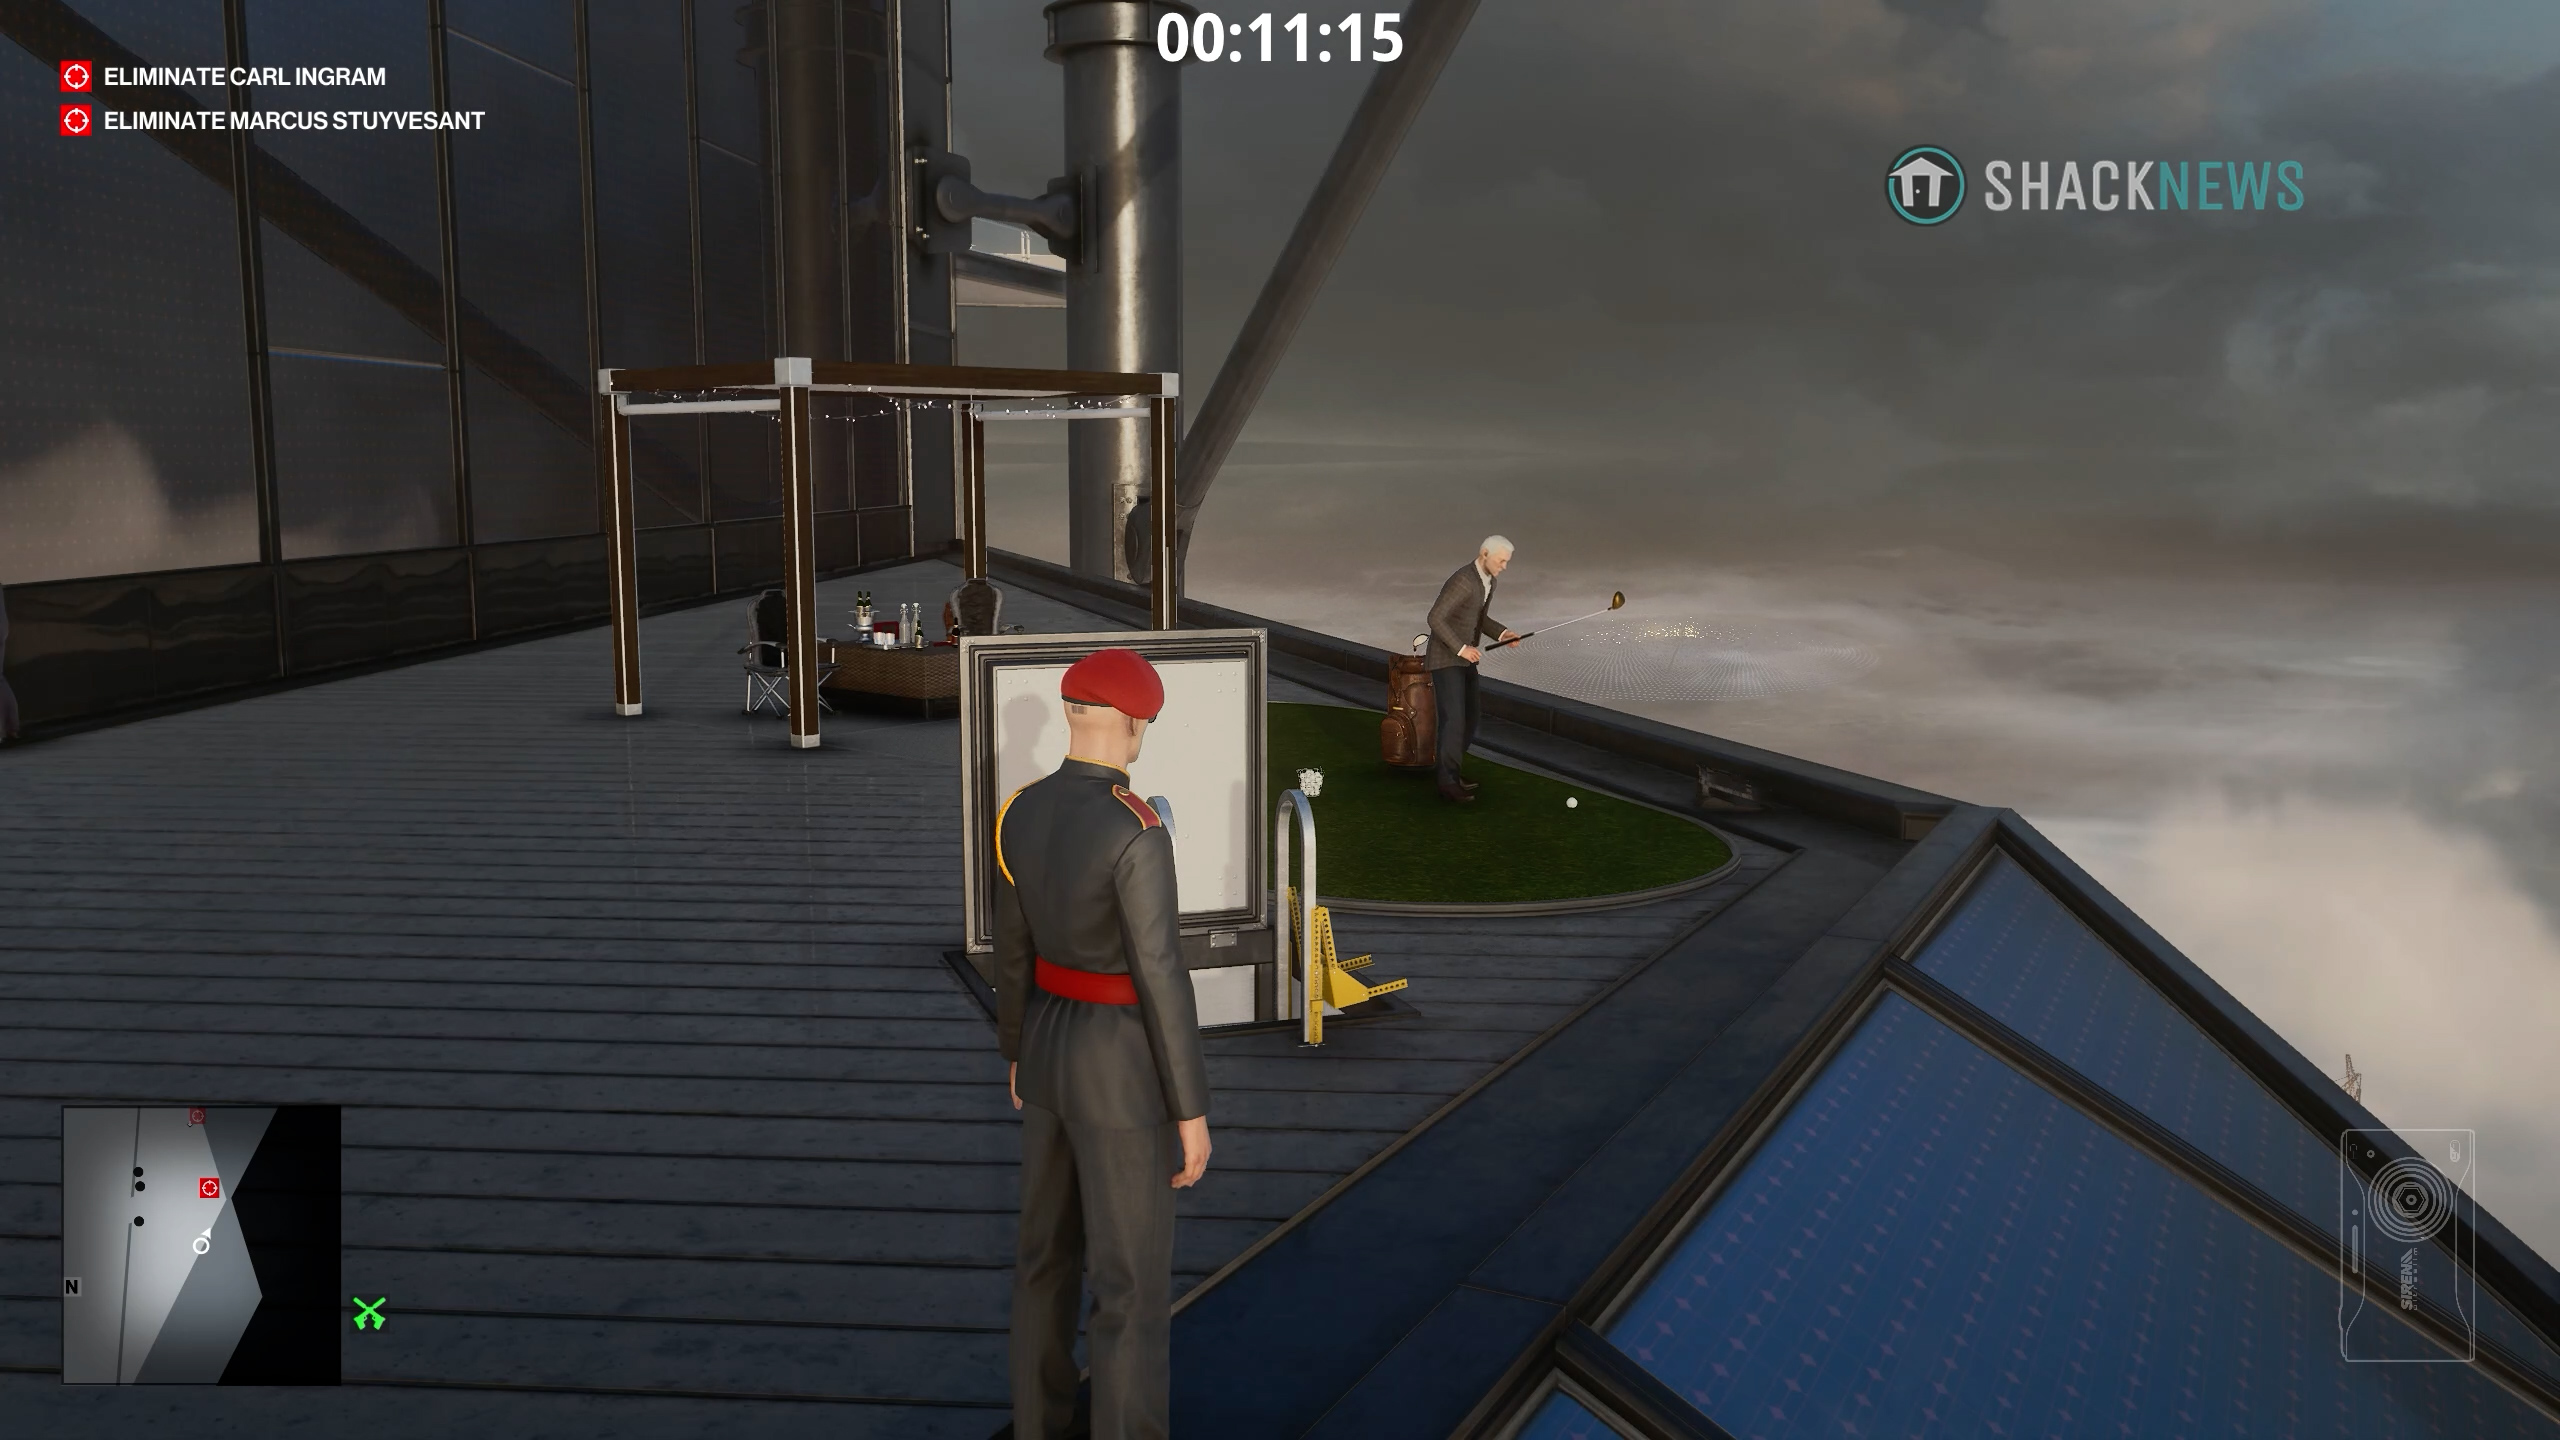 How to get Carl to play golf - hitman 3